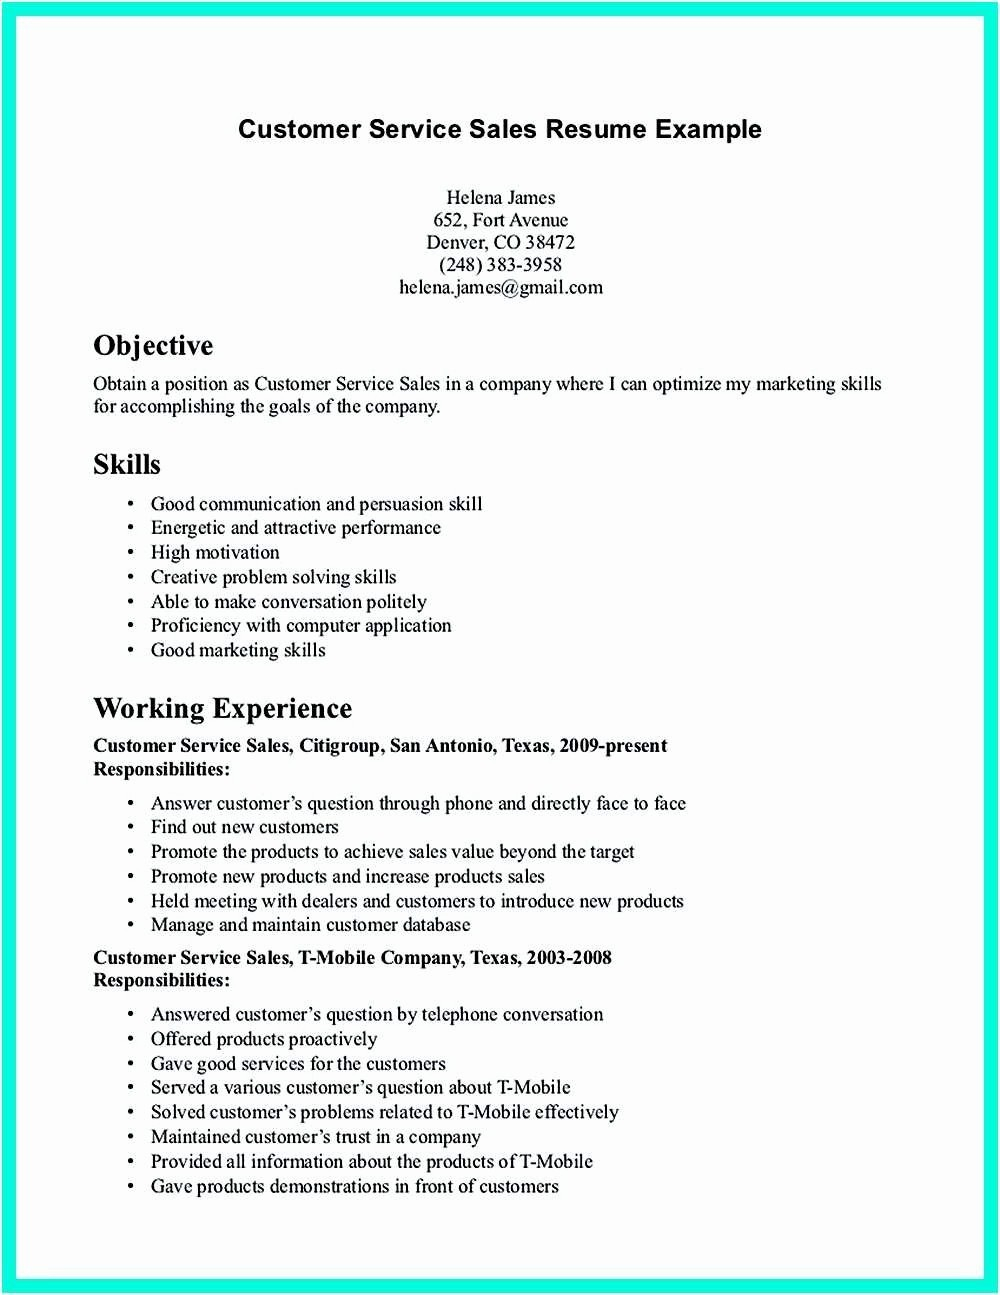 Medical Sales Resume Examples - Pharmaceutical Sales Resume Awesome Medical Representatives Resume